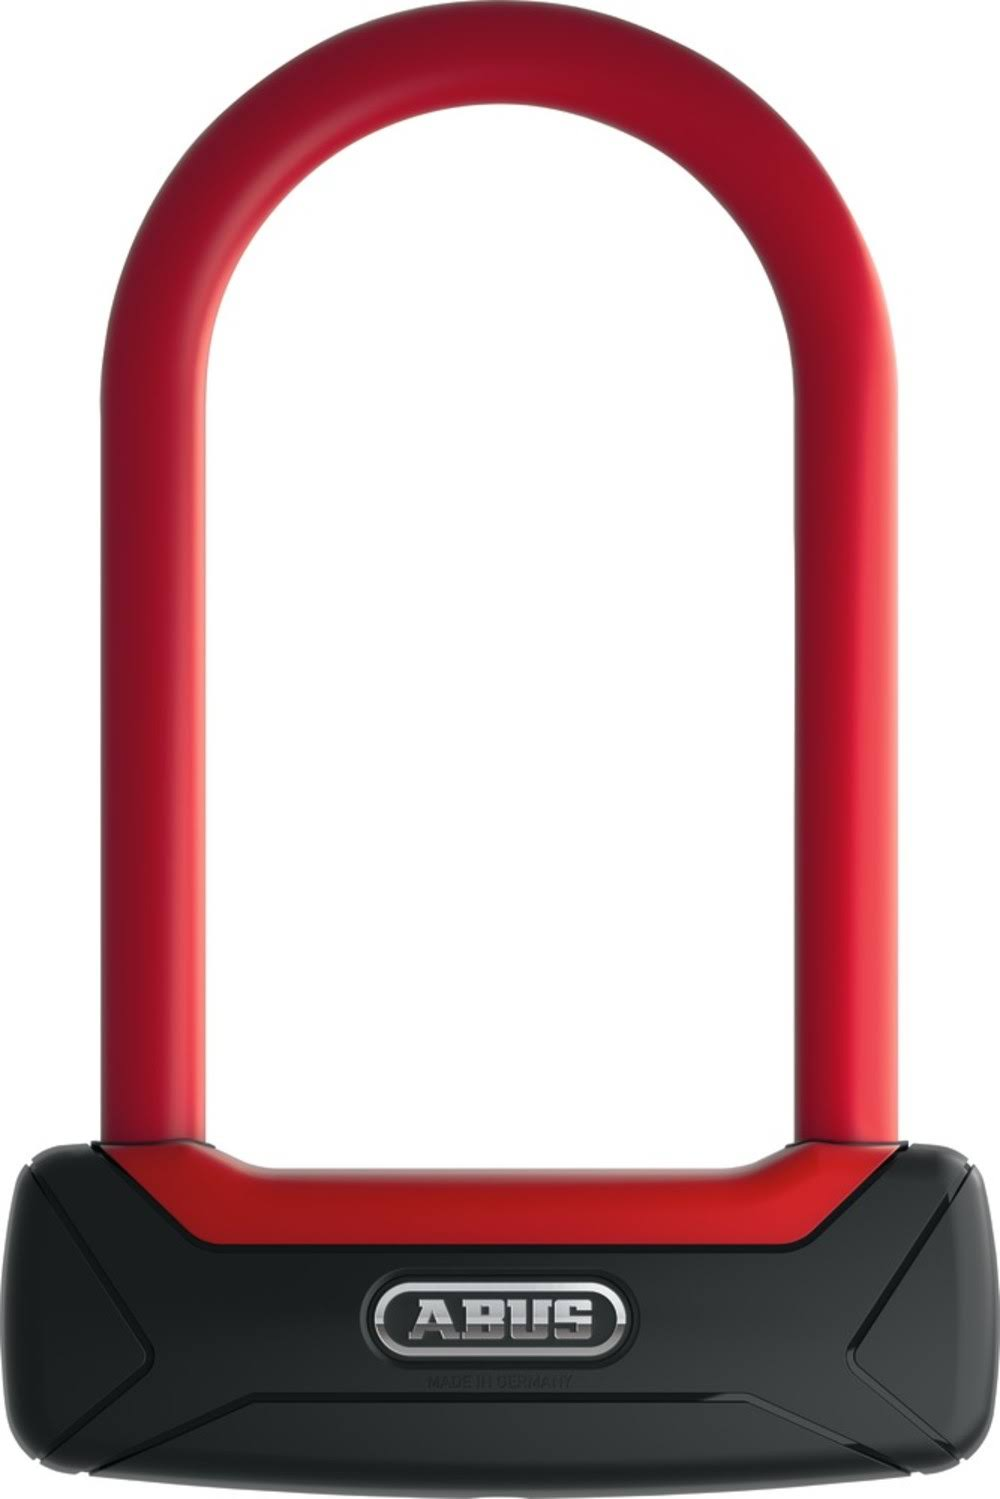 Abus Granit Plus 640 U Lock Key Padlock - Red